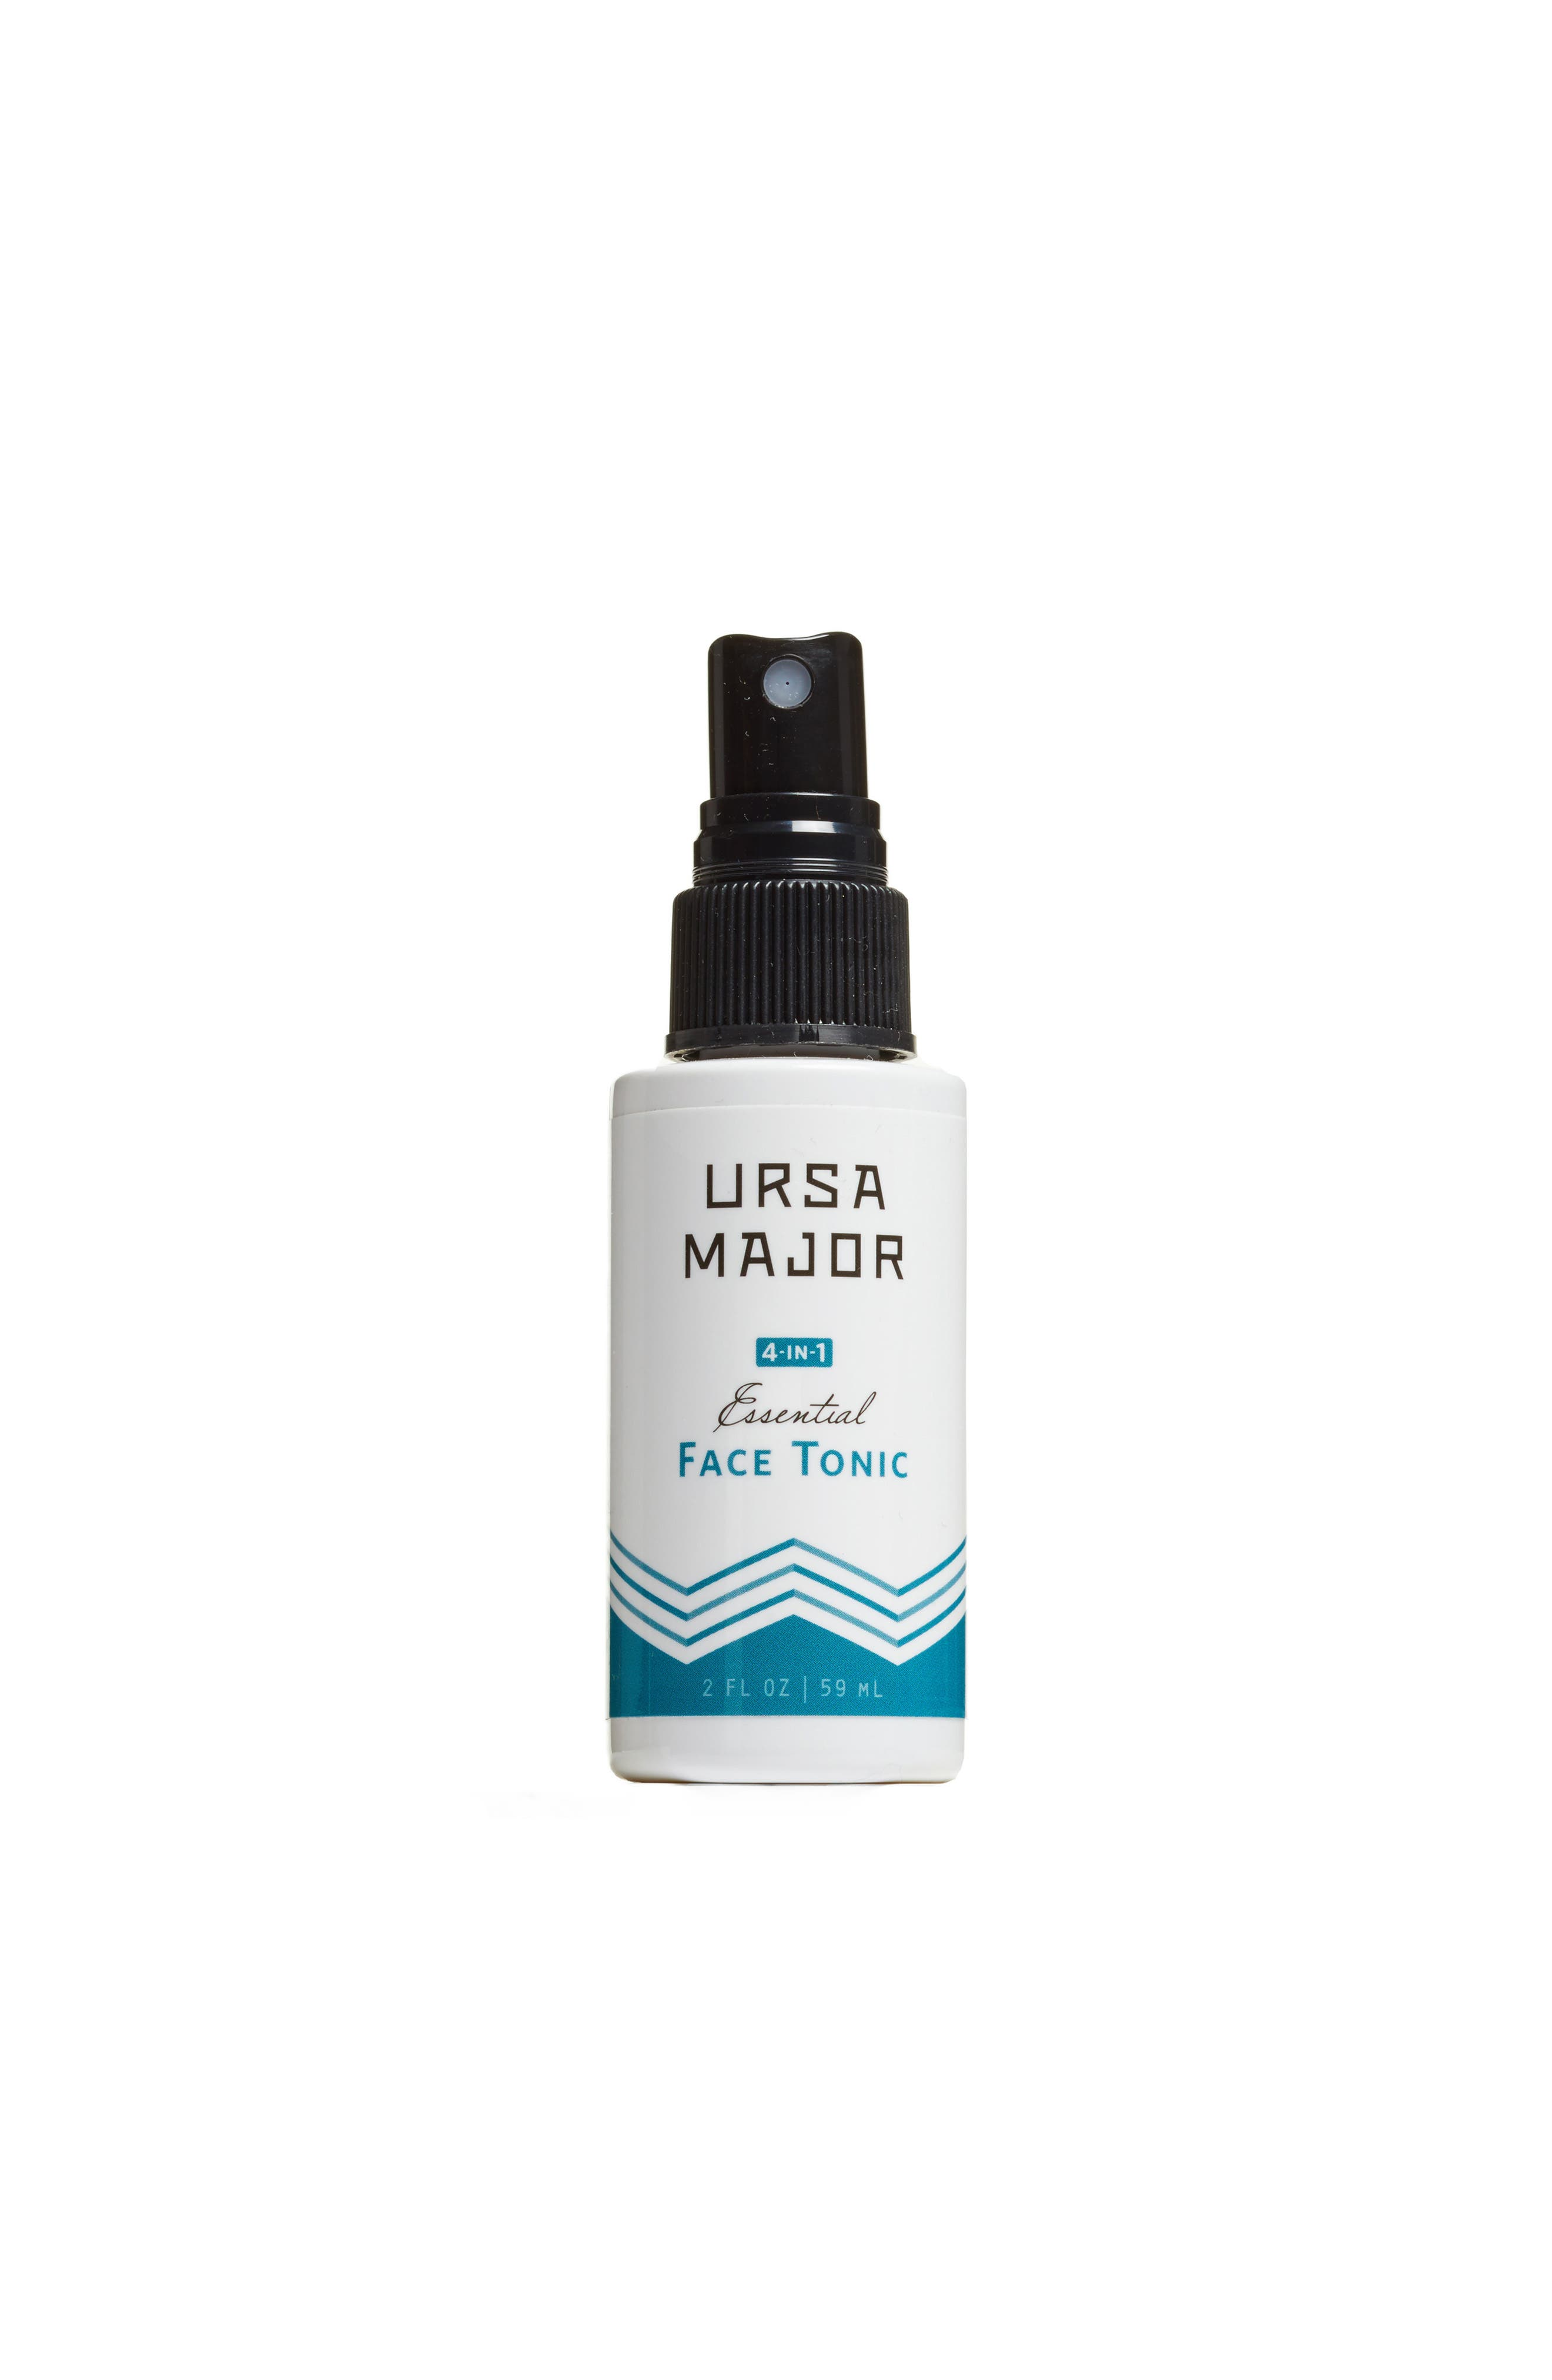 Ursa Major 4 in 1 Essential Travel Size Face Tonic